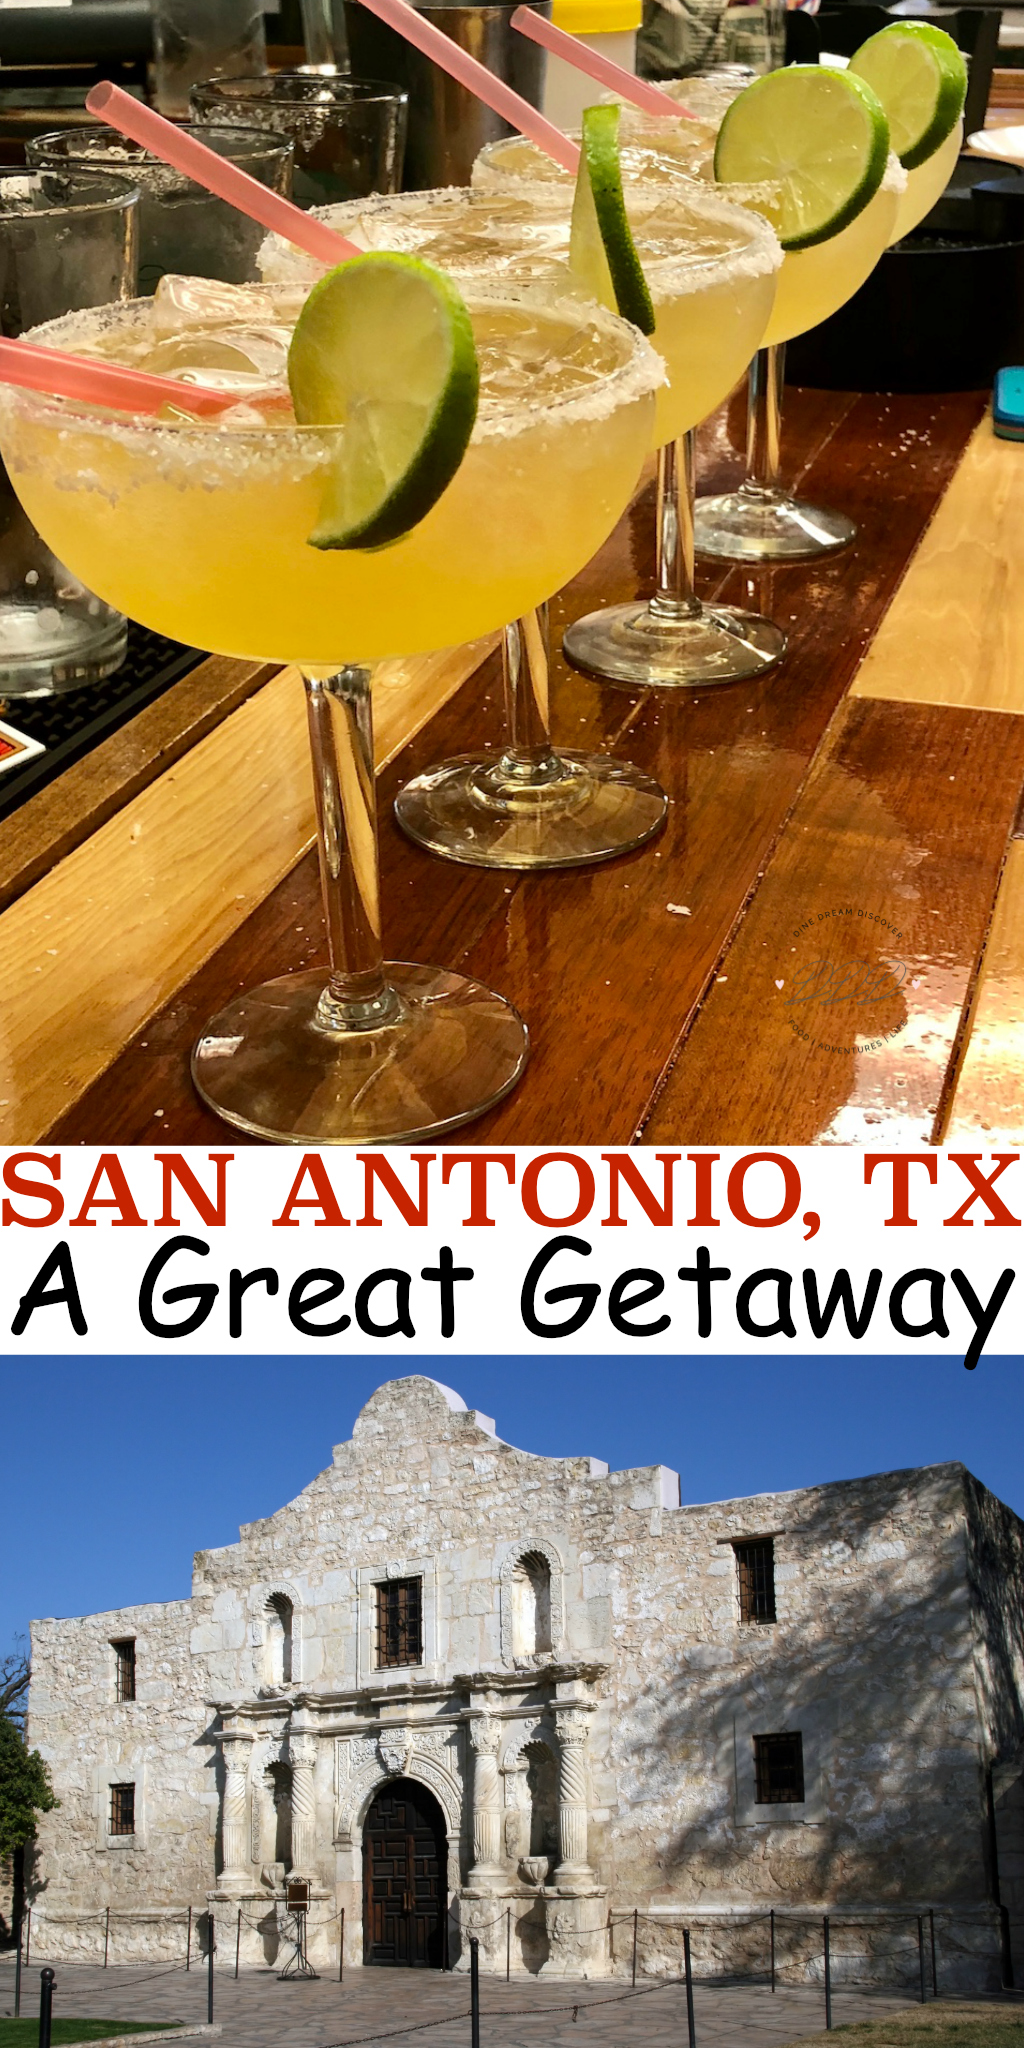 San Antonio is best described as a vibrant world famous destination with tons of character and historic charm especially the world famous River Walk.